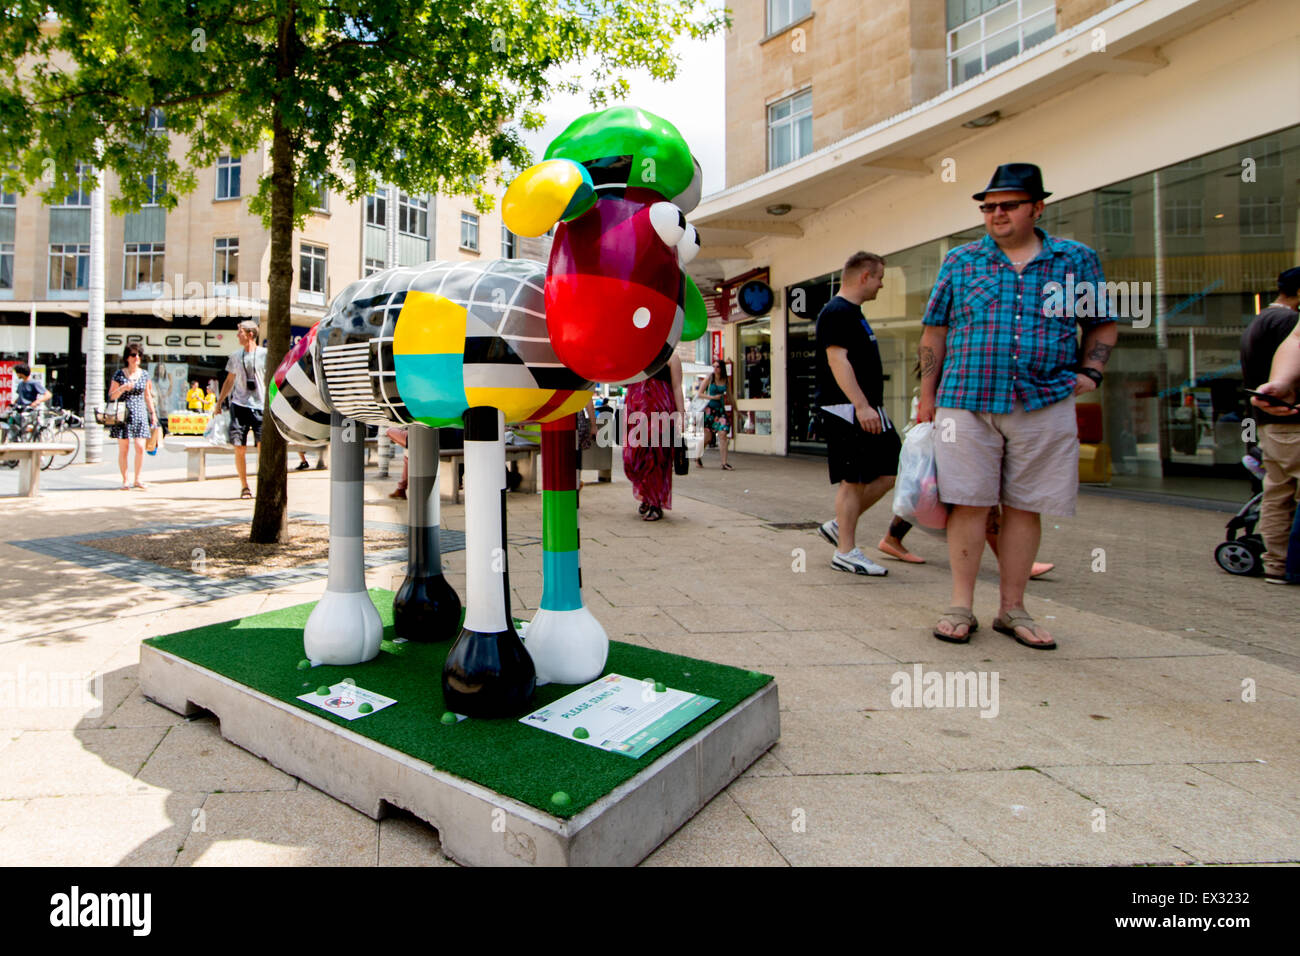 PLEASE STAND BY by Timmy Willmott in the center of the Broadmead shoping area in Bristol. Part of the Shaun the - Stock Image